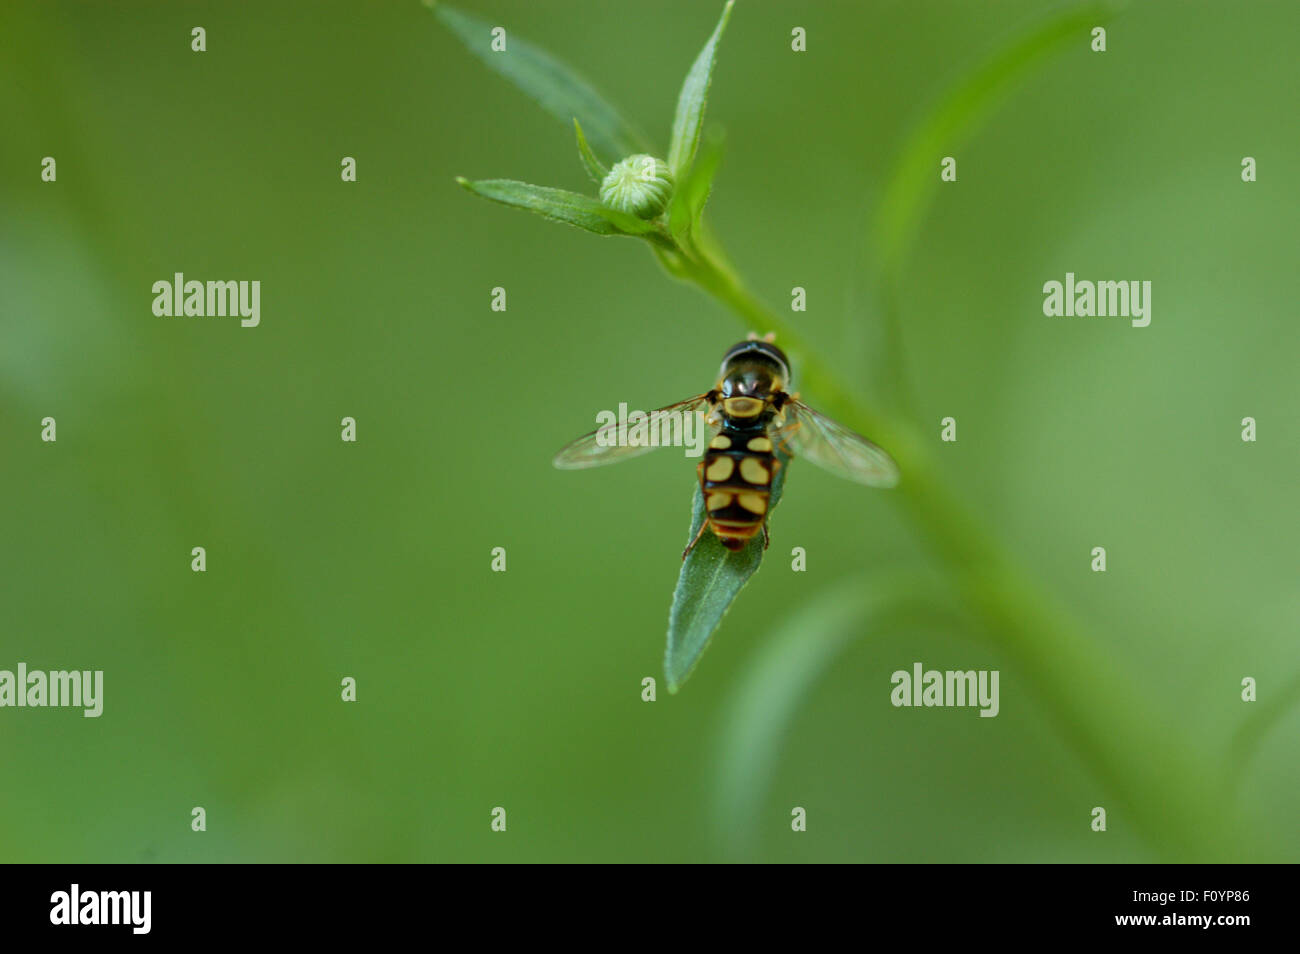 Hoverfly, sometimes called flower flies, sweat bees or syrphid flies, make up the insect family Syrphidae. - Stock Image